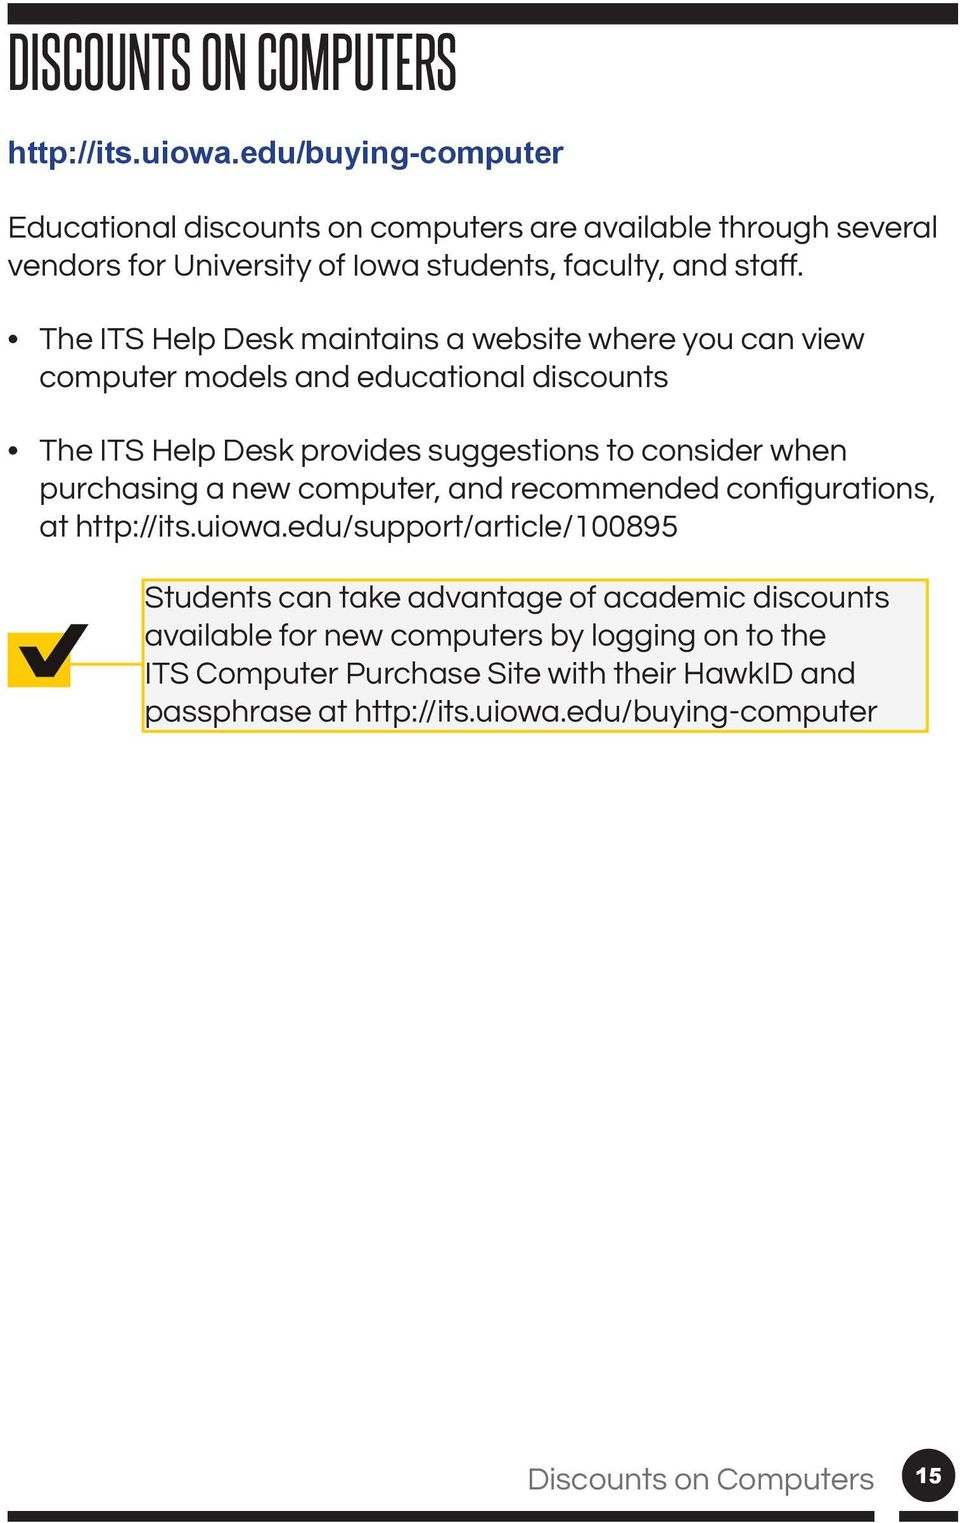 a website where you can view computer models and educational discounts The ITS Help Desk provides suggestions to